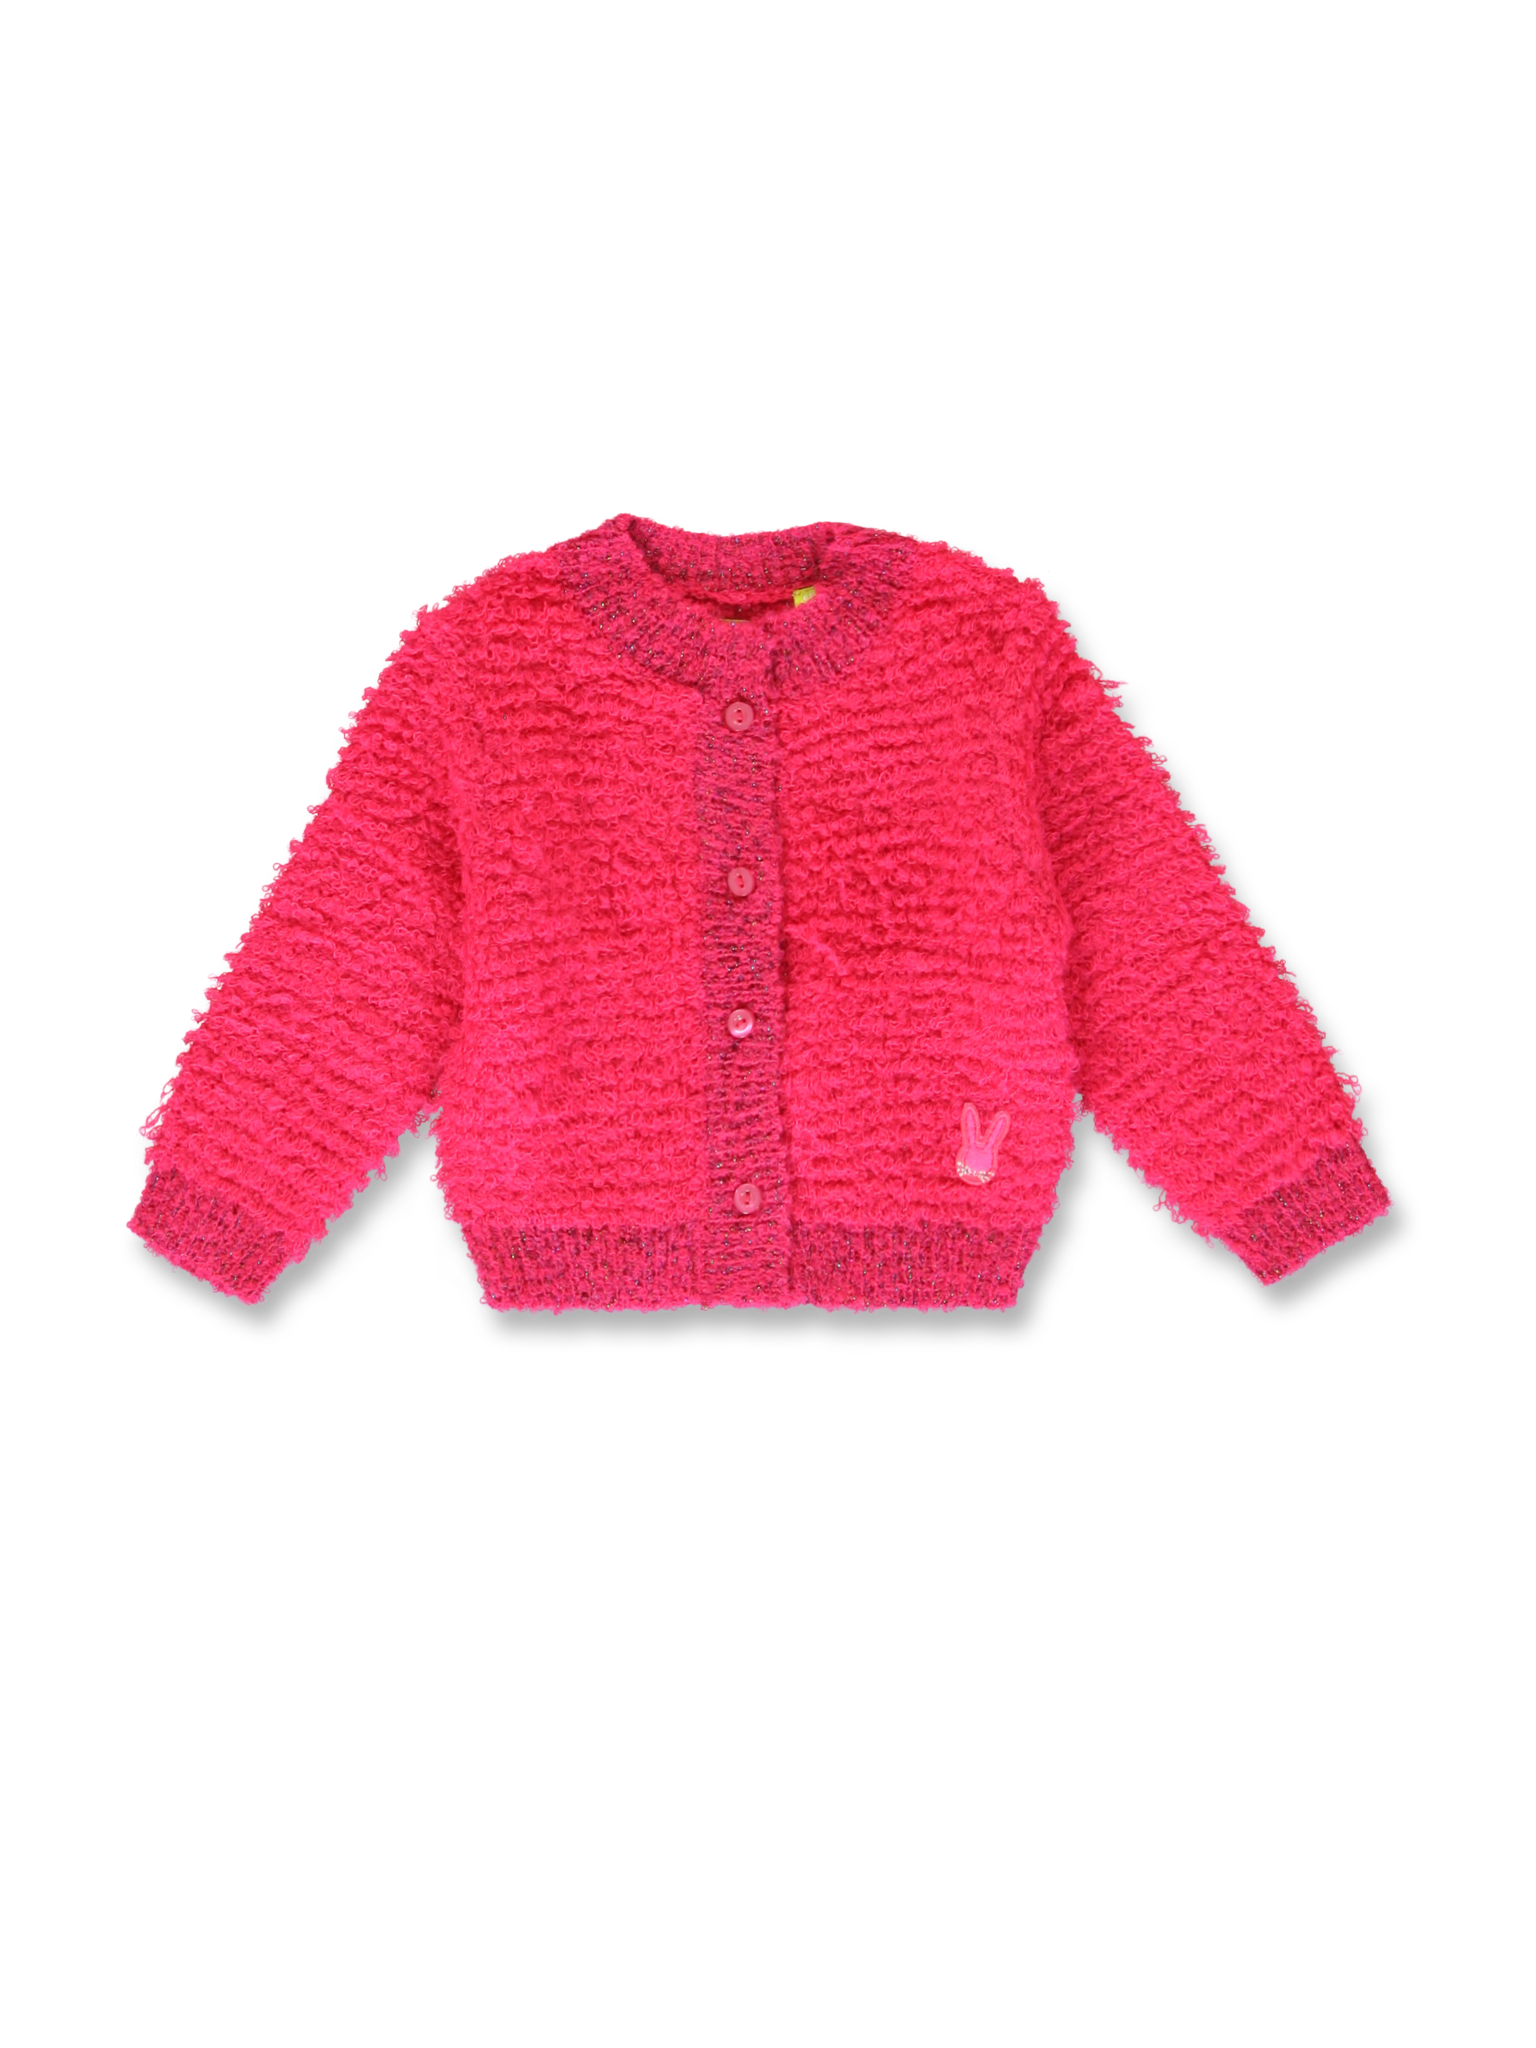 All Brands | Winterproducts Baby | Cardigan Knitwear | 8 pcs/box